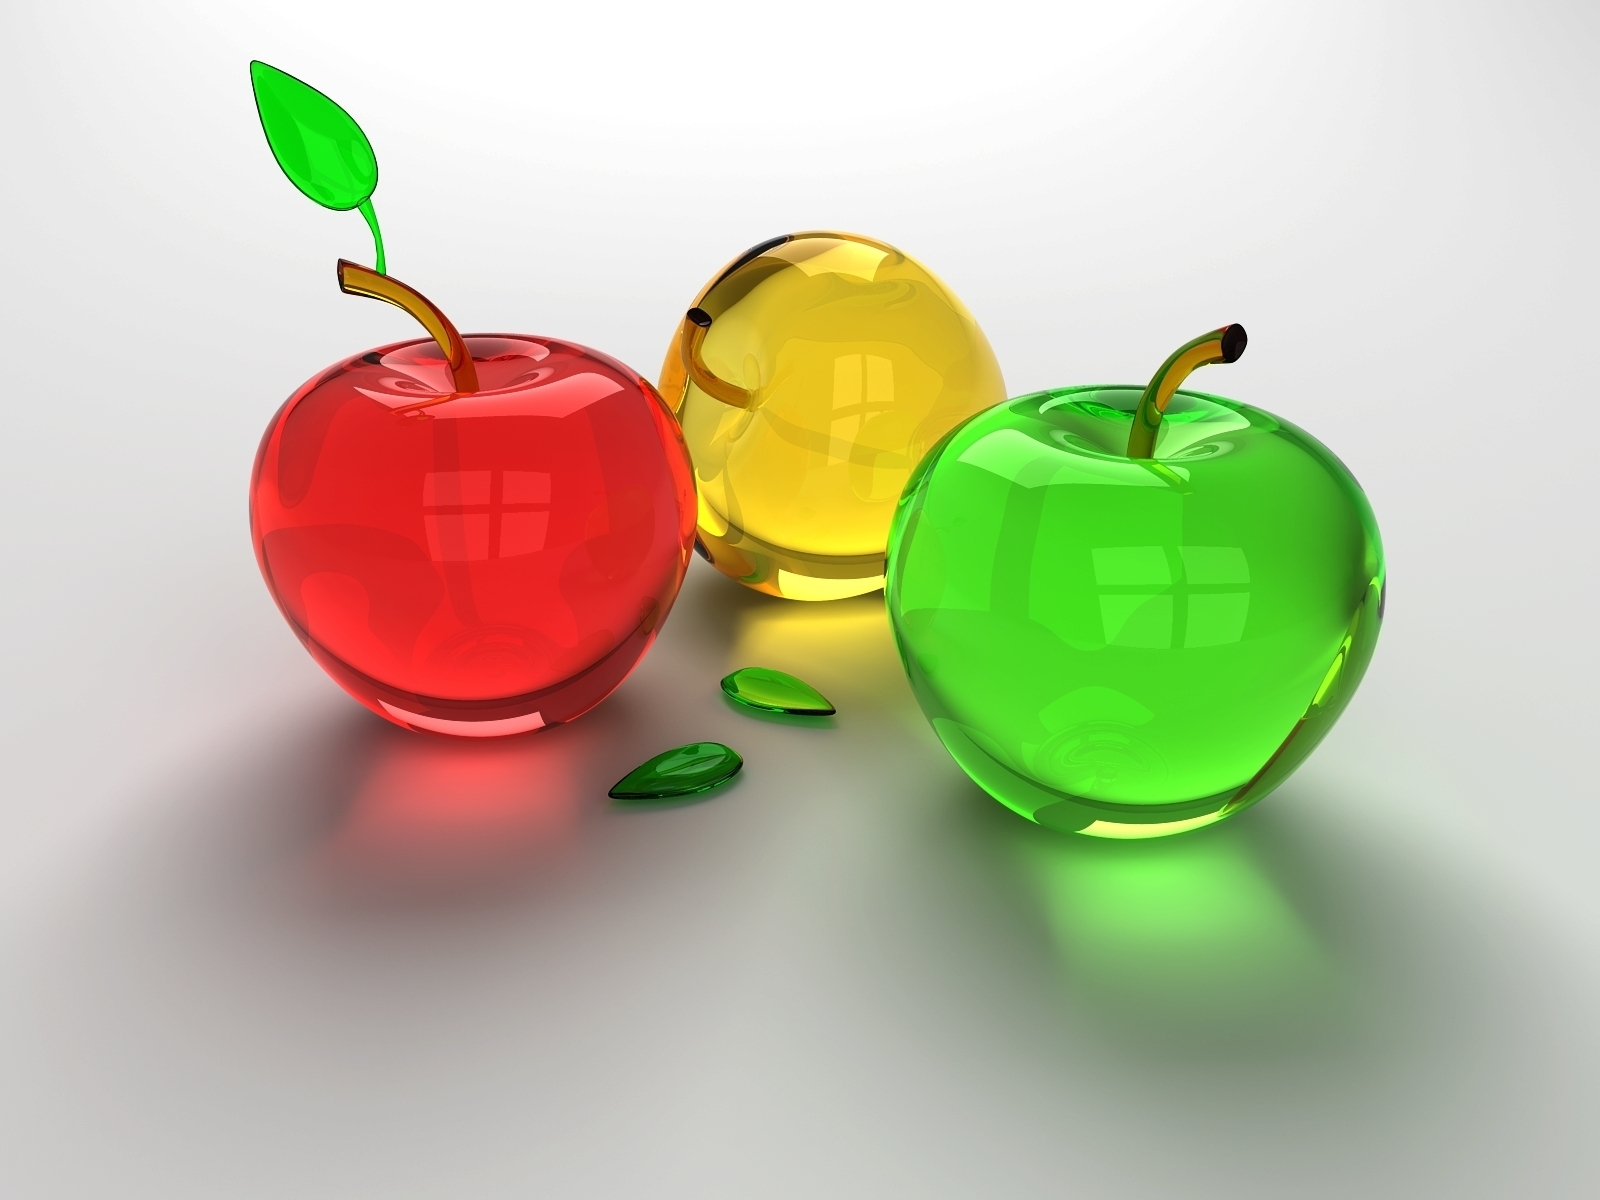 apples images glass apples hd wallpaper and background photos (17539233)